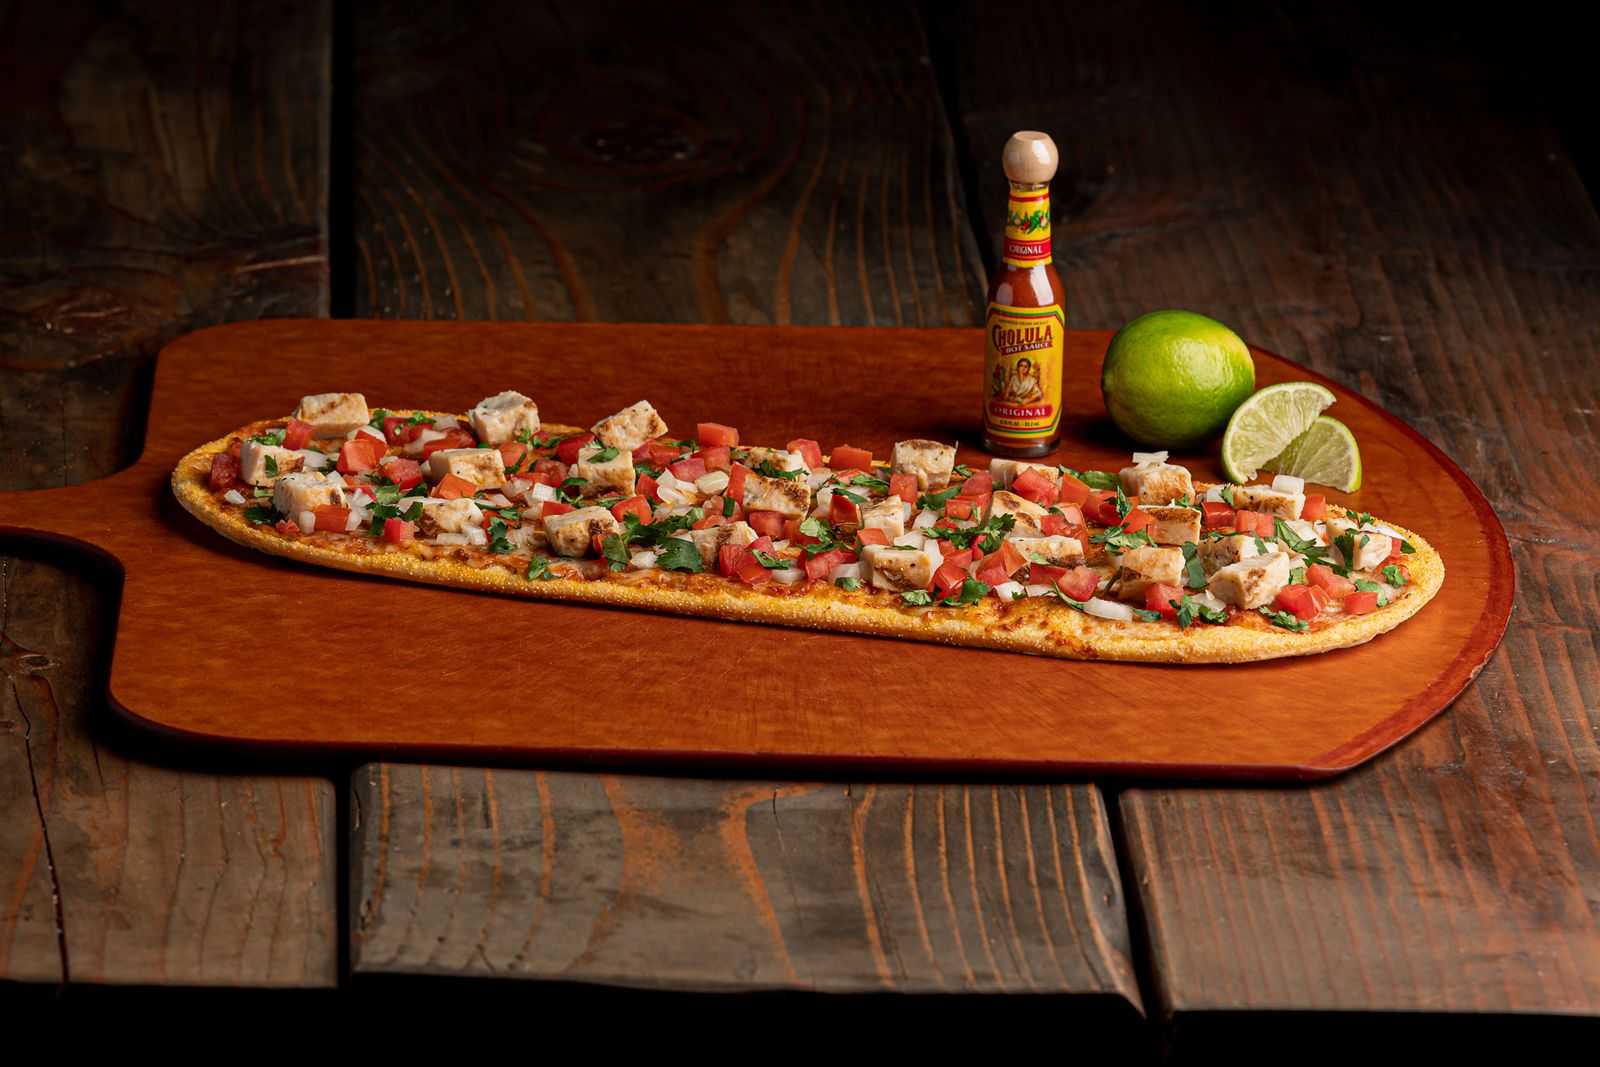 Pizza Guys Rolls Out New Street Taco Flatbread